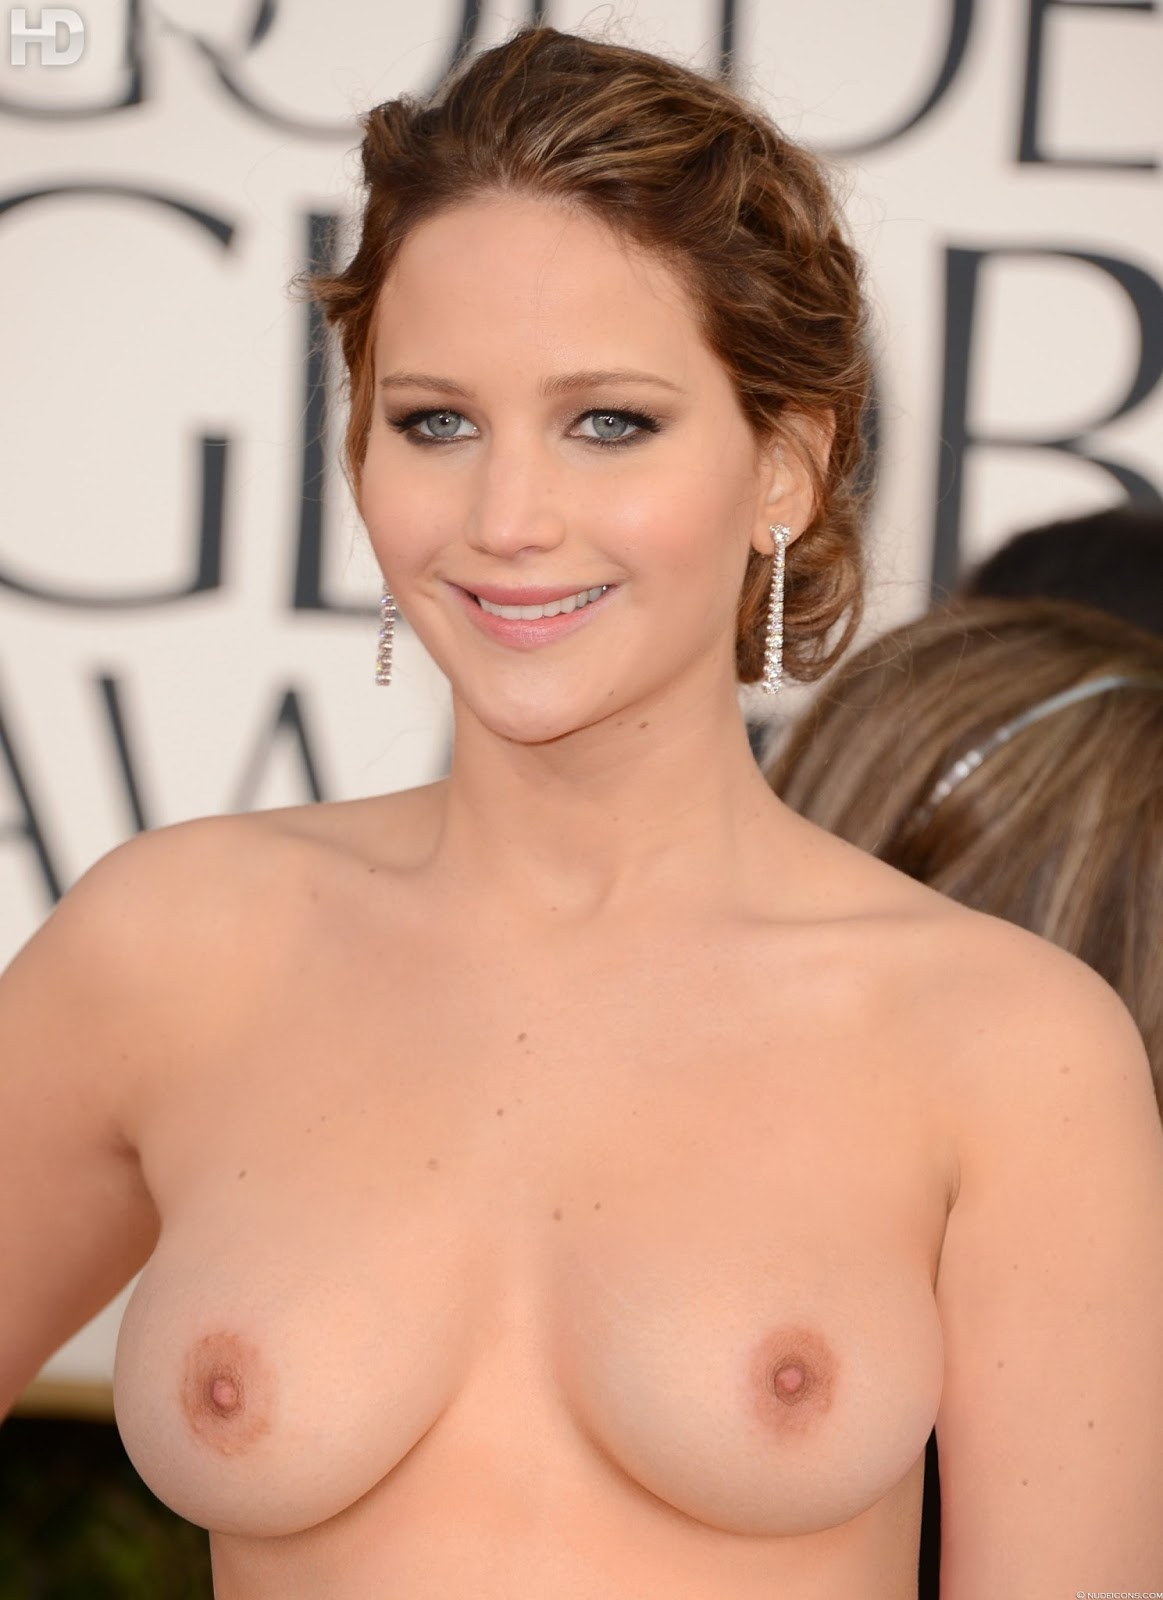 Nude Pictures Of Jennifer